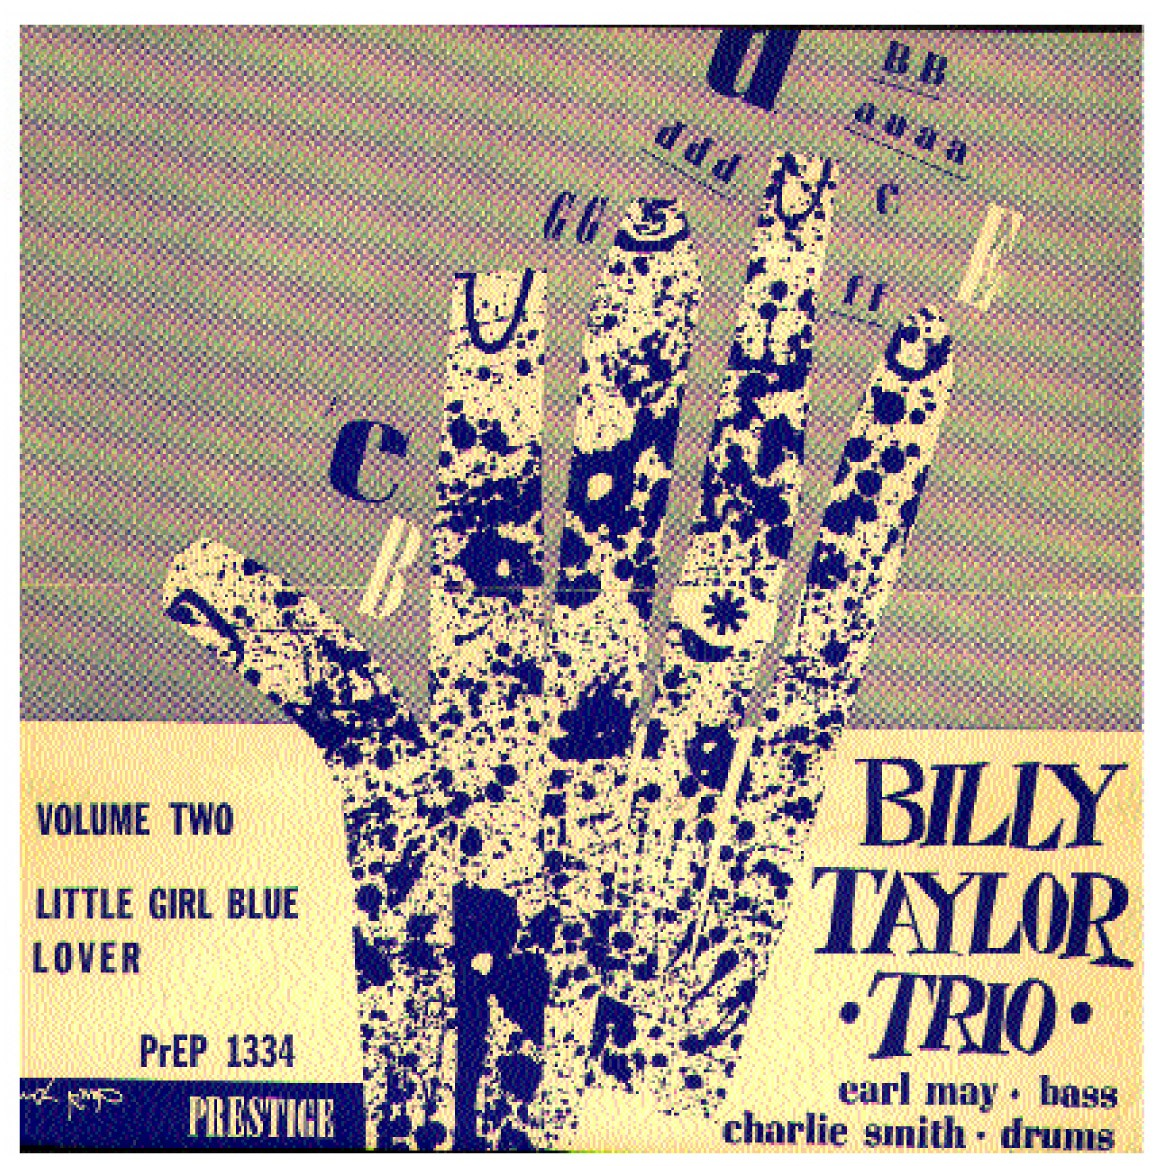 BILLY-TALYOR-TRIO